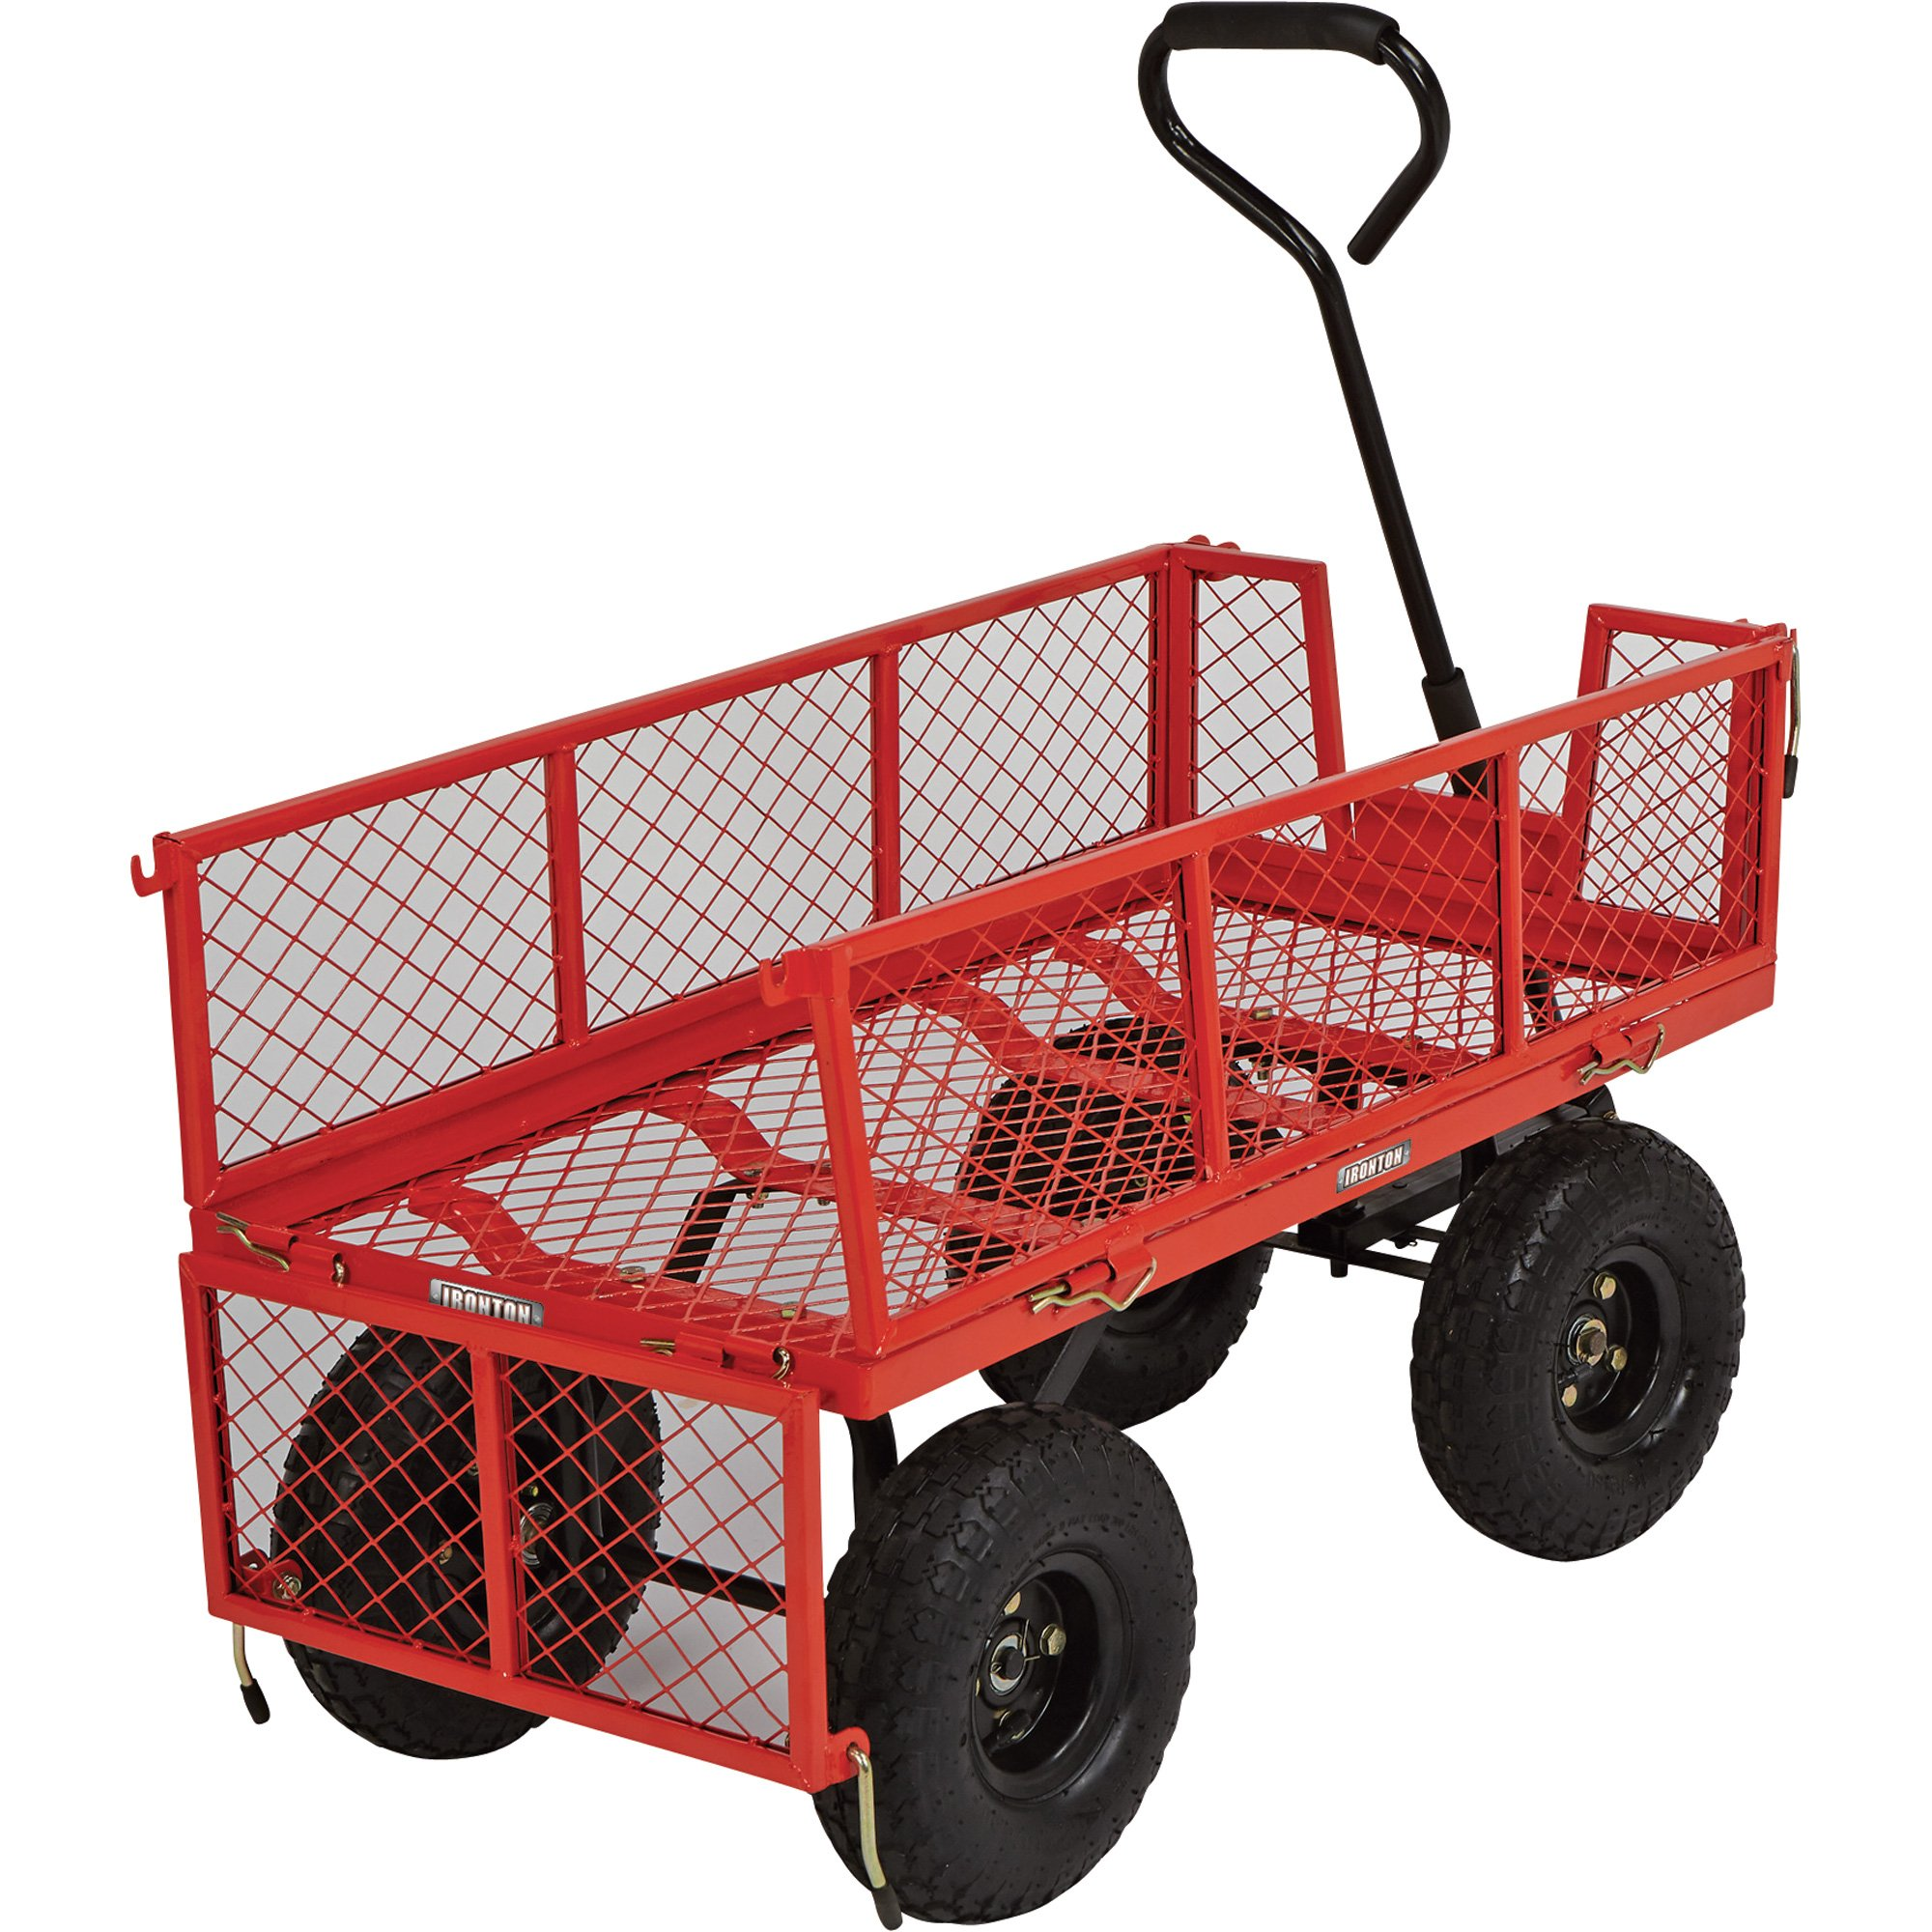 Steel Cart, 34in.L x 18in.W, 400-Lb. Capacity by Ironton (Image #3)